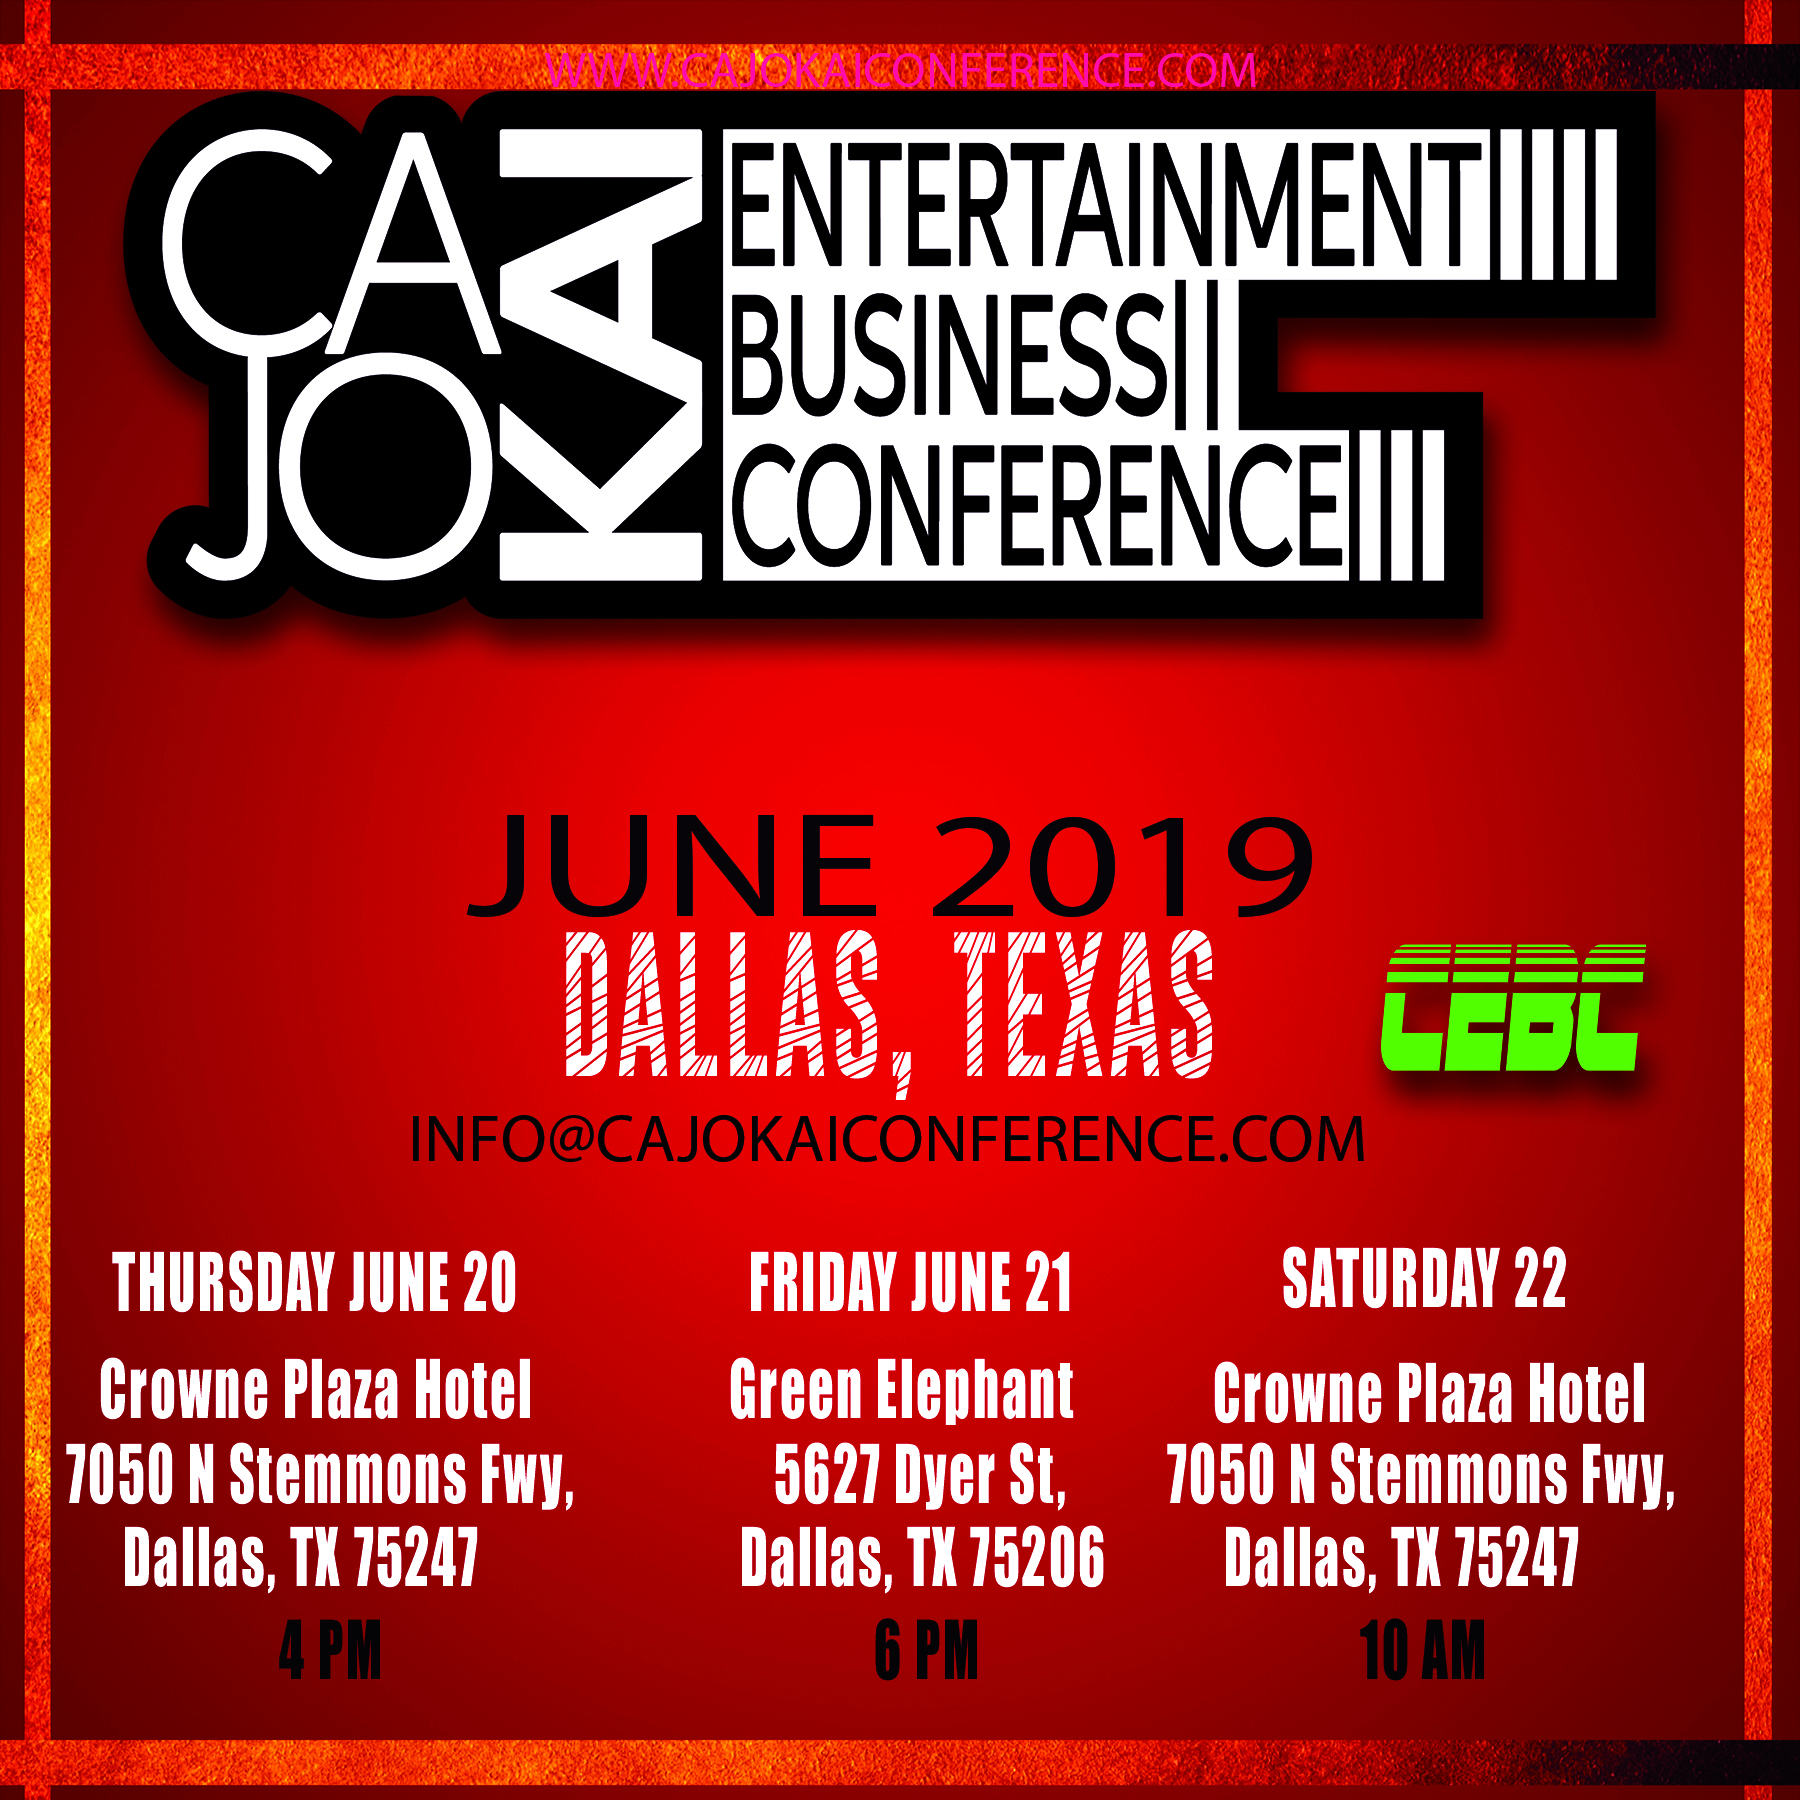 [Event] CaJoKai Entertainment Business Conference (CEBC) – June 20 thru 22, 2019- Dallas Texas